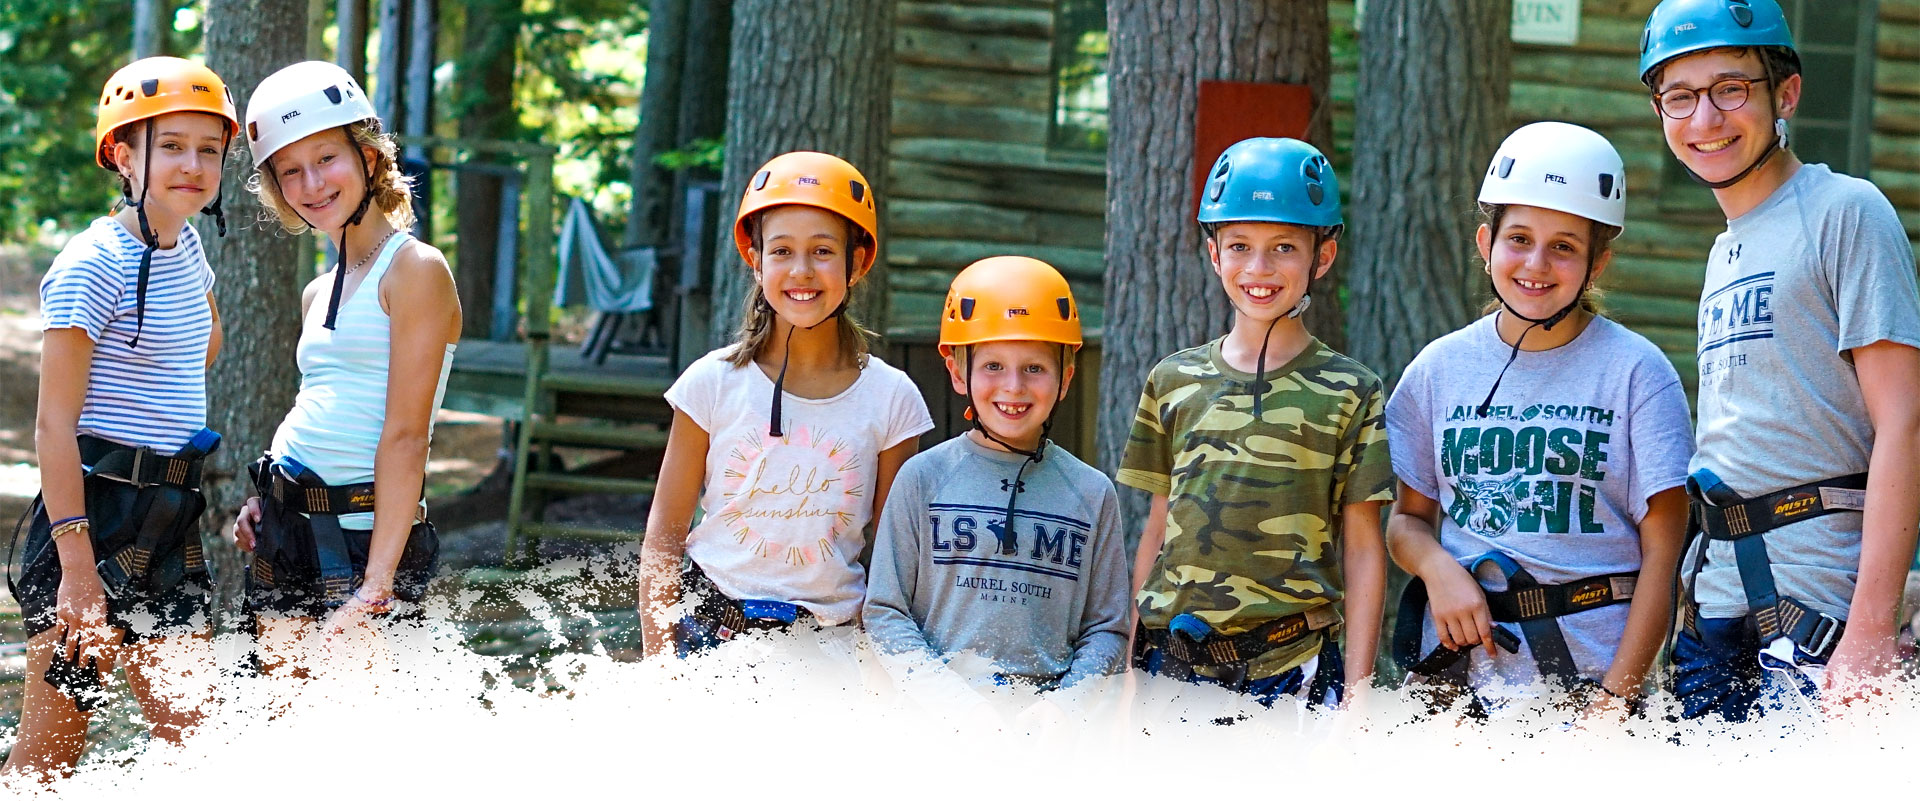 Apply for Camp Laurel South in Maine